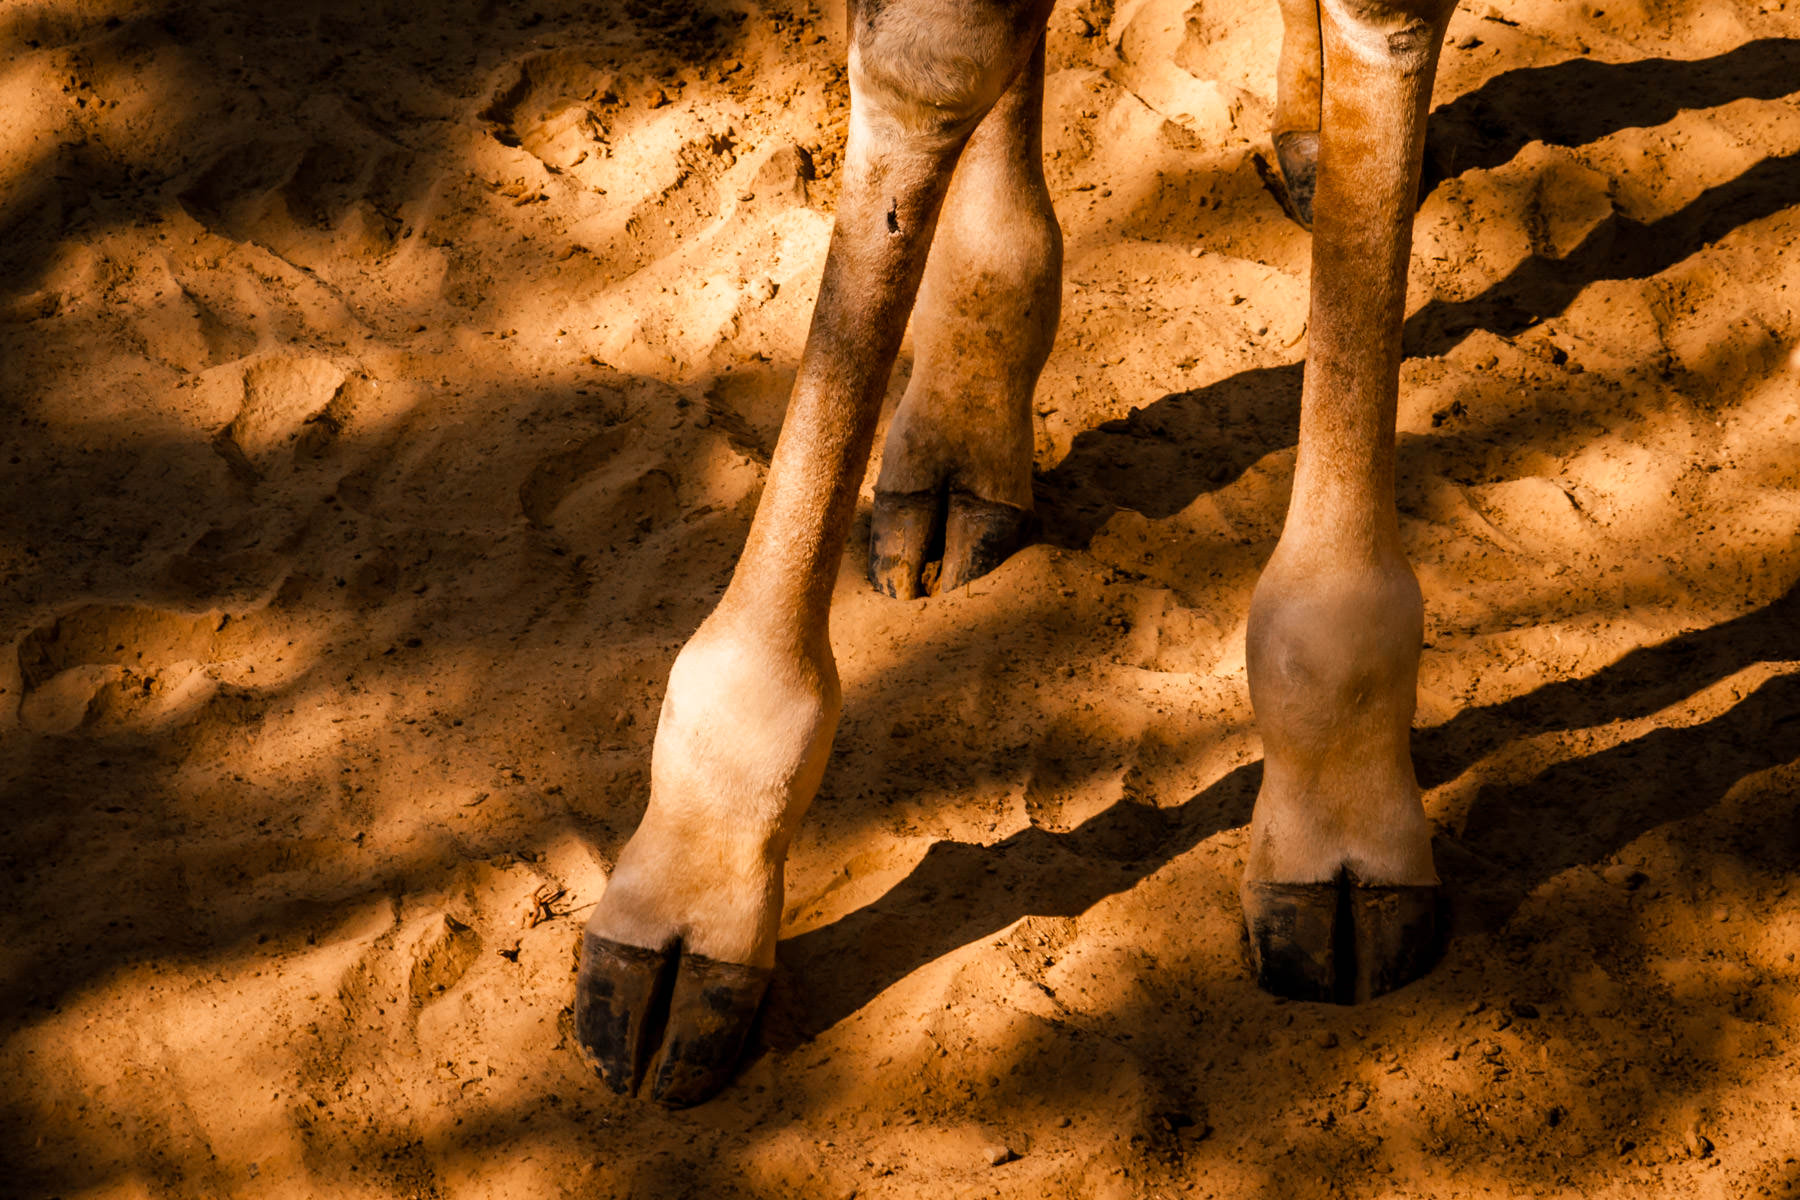 A giraffe's hooved feet spotted at the Dallas Zoo.